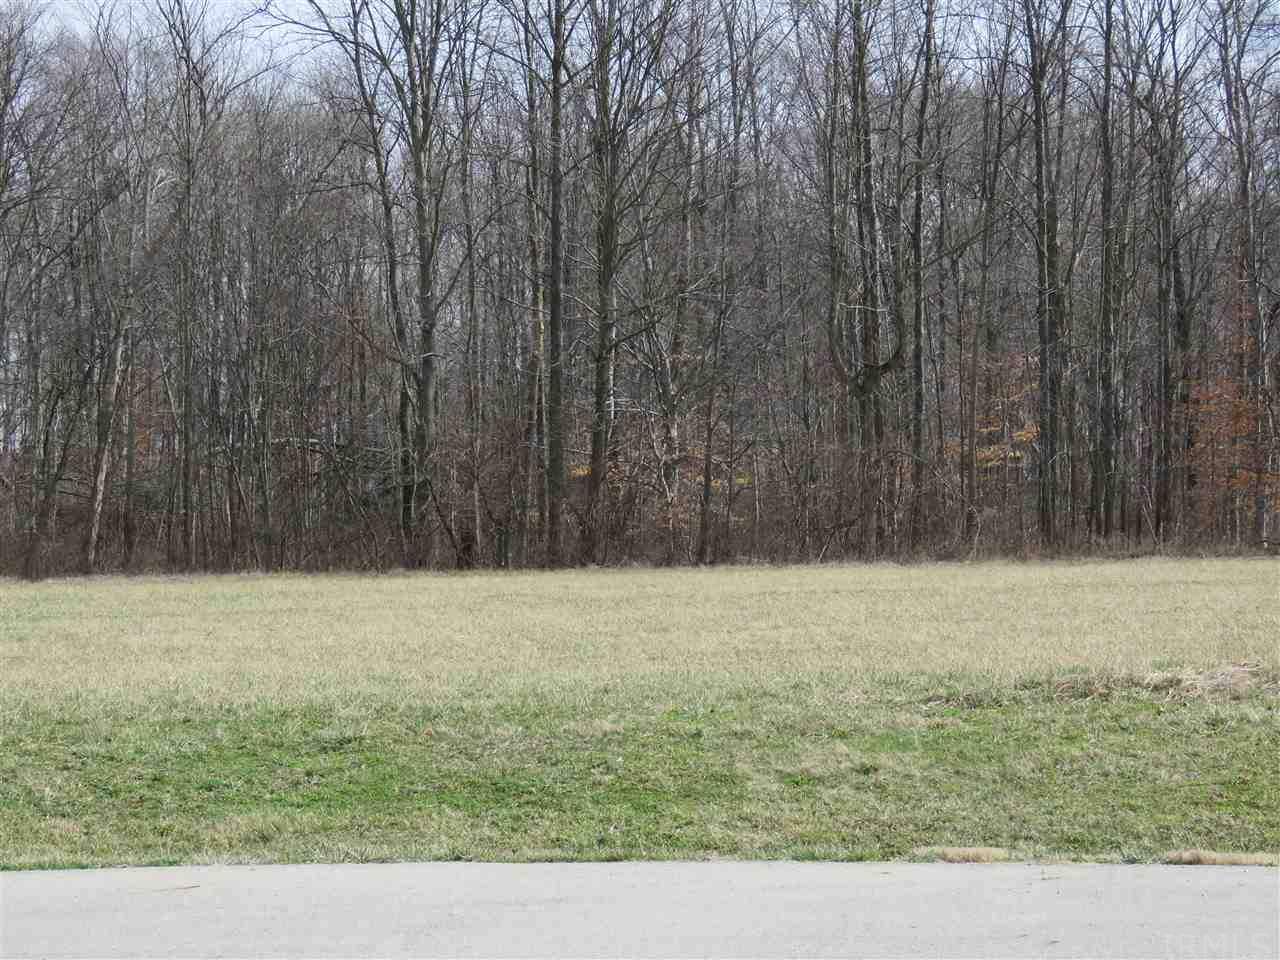 029 Hyland Meadows, Knightstown, IN 46148